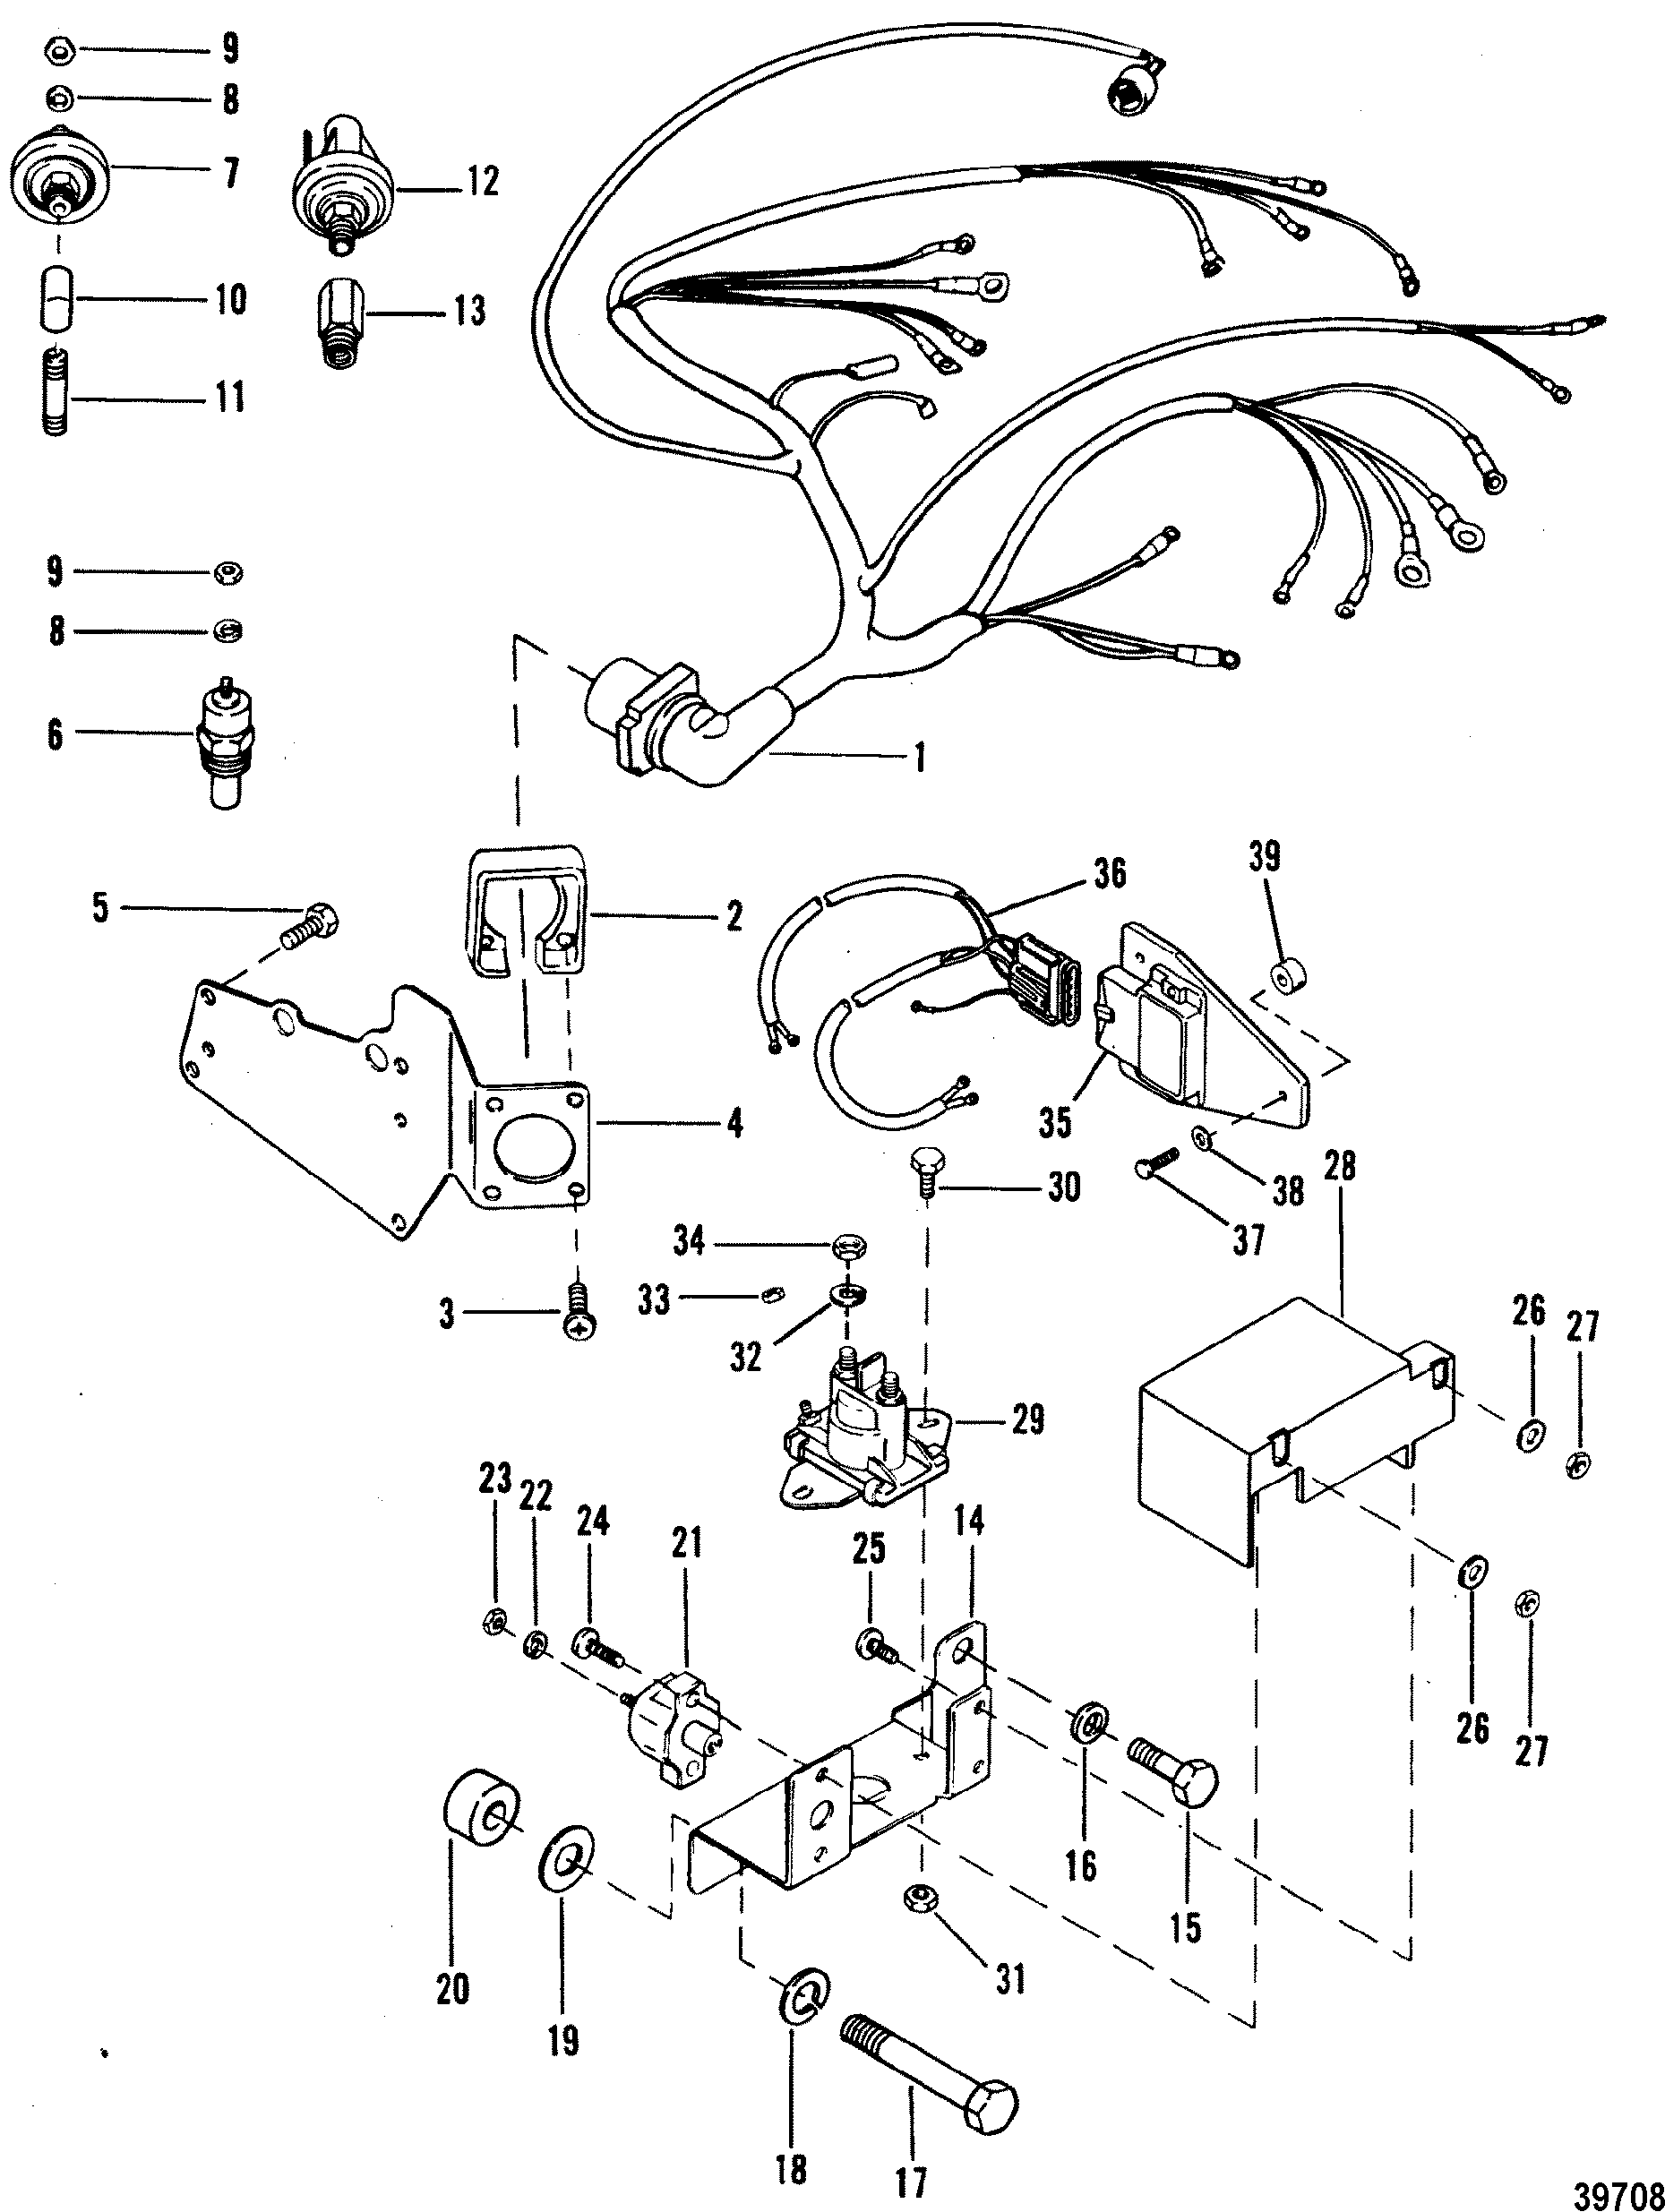 wiring harness and electrical components for mercruiser 4